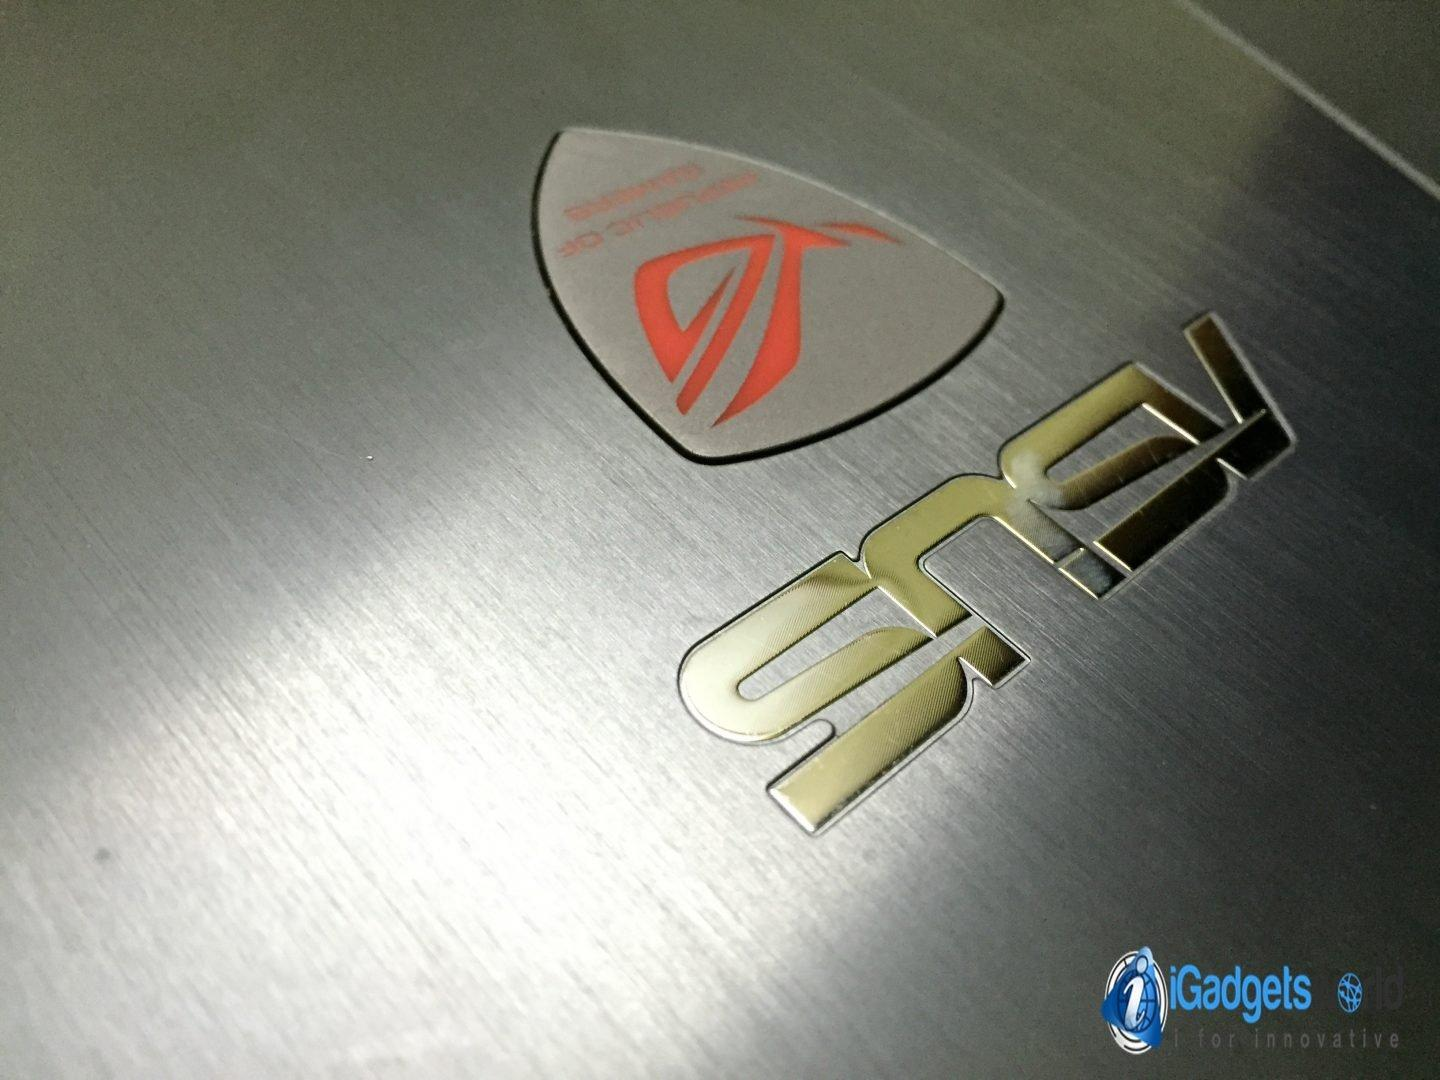 Asus ROG G751J Review: A Slightly Overpriced Ultra High-End Gaming Laptop - 7